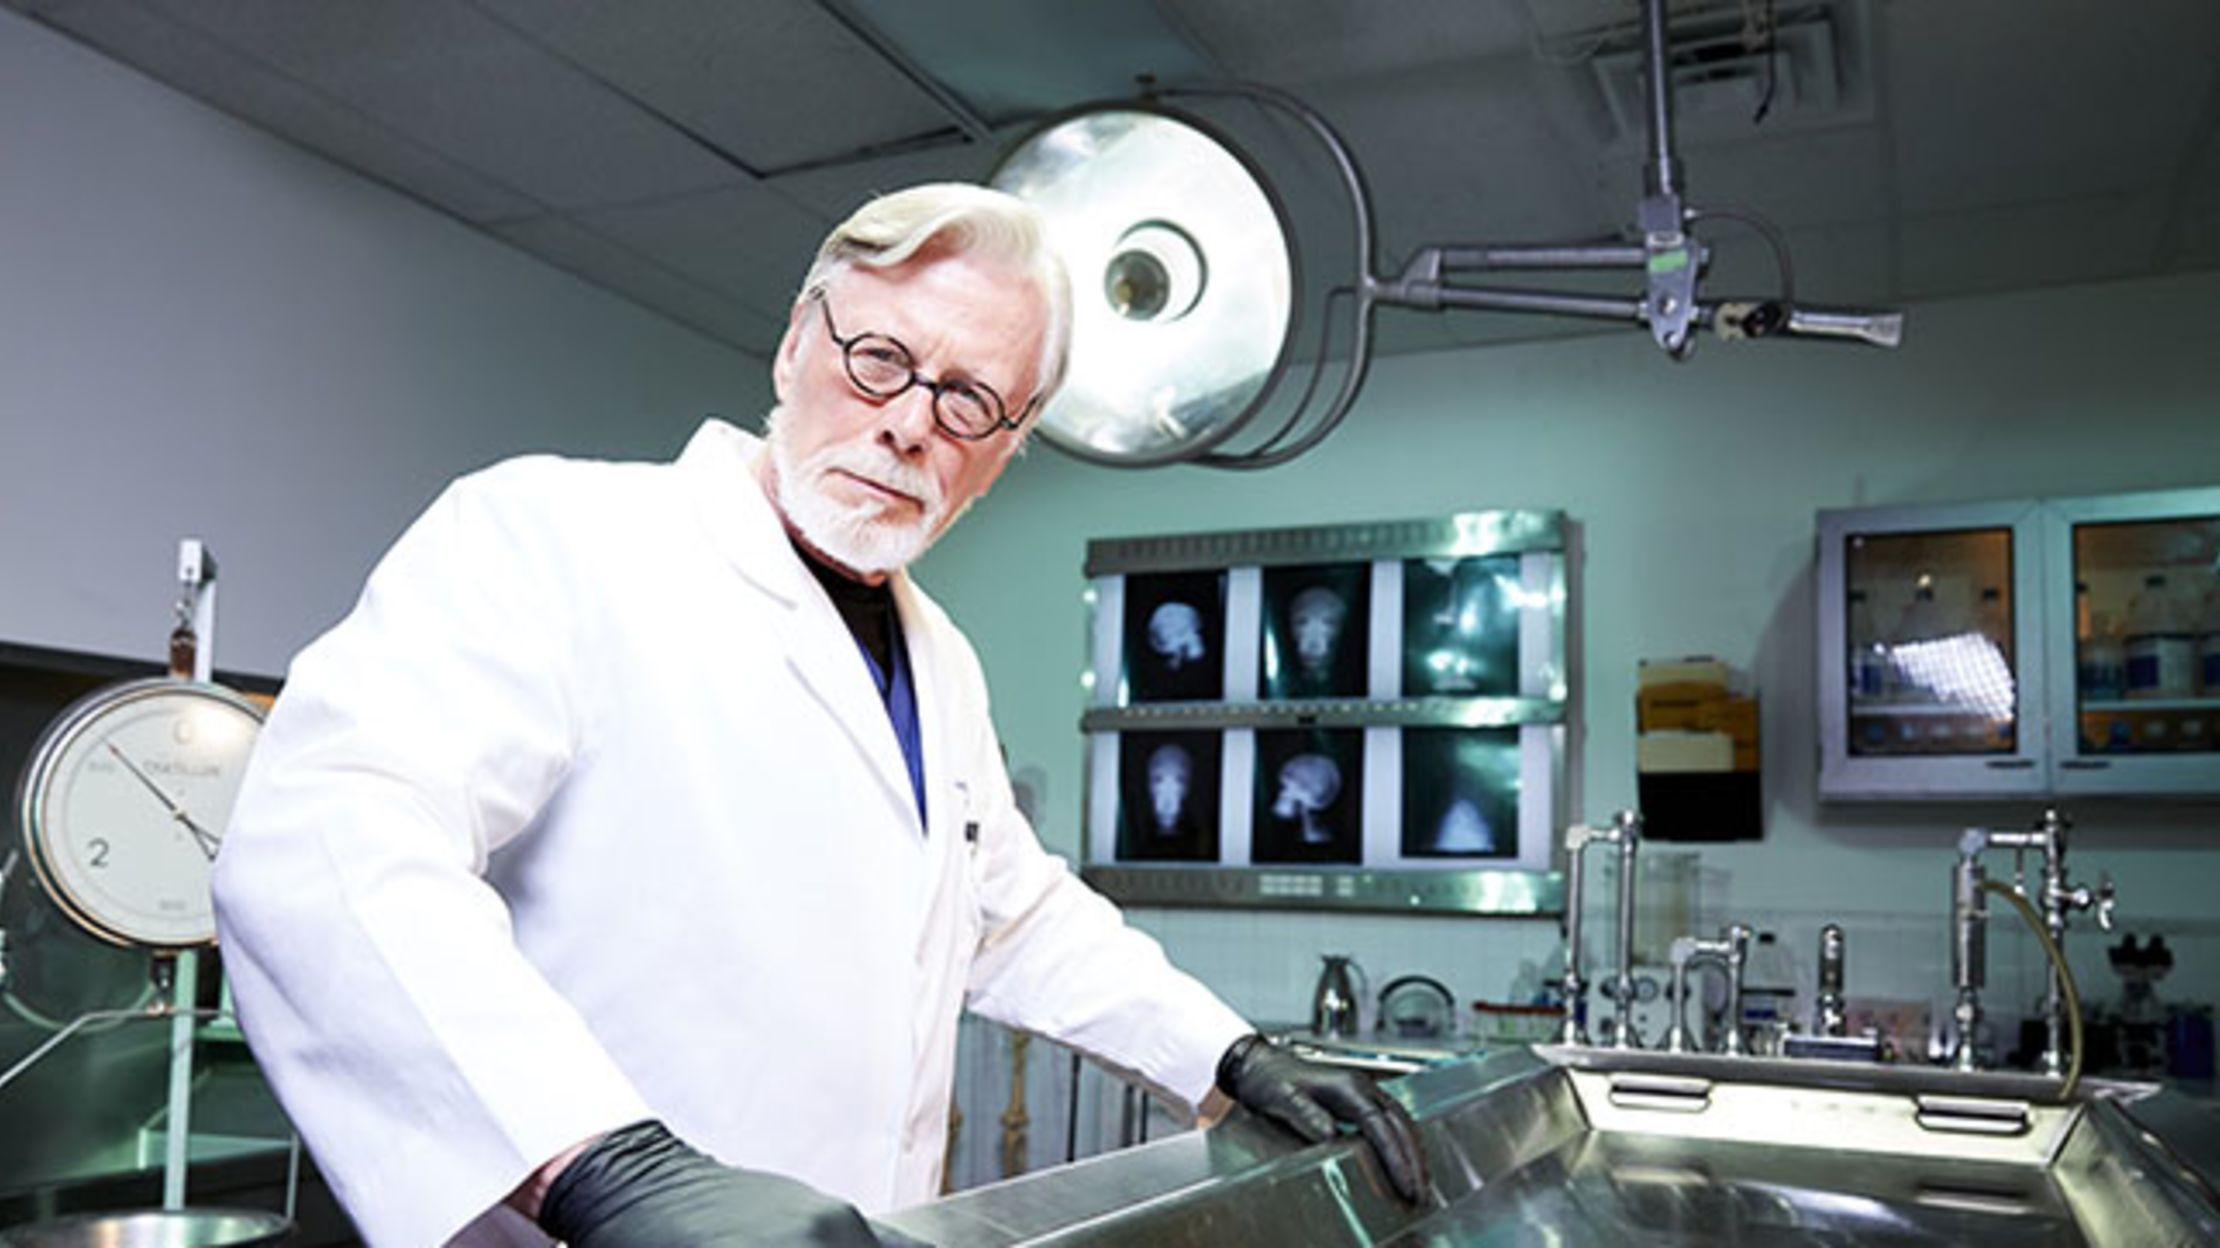 9 Secrets Of Coroners And Medical Examiners Mental Floss